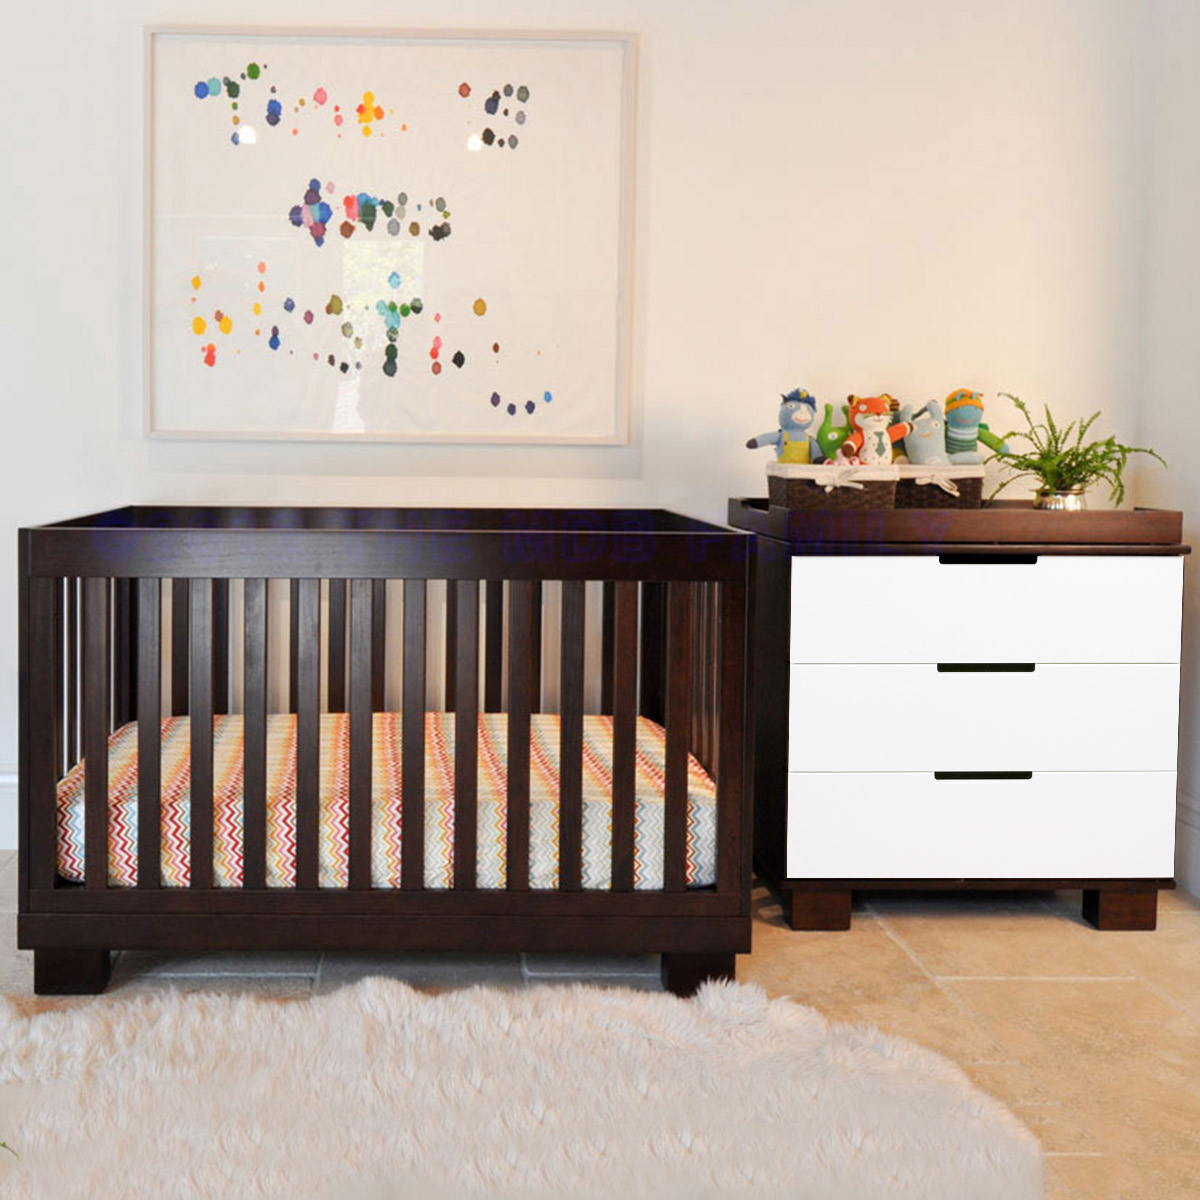 Babyletto 2 Piece Nursery Set Modo 3 In 1 Convertible Crib And Dresser Changer Grey White Free Shipping